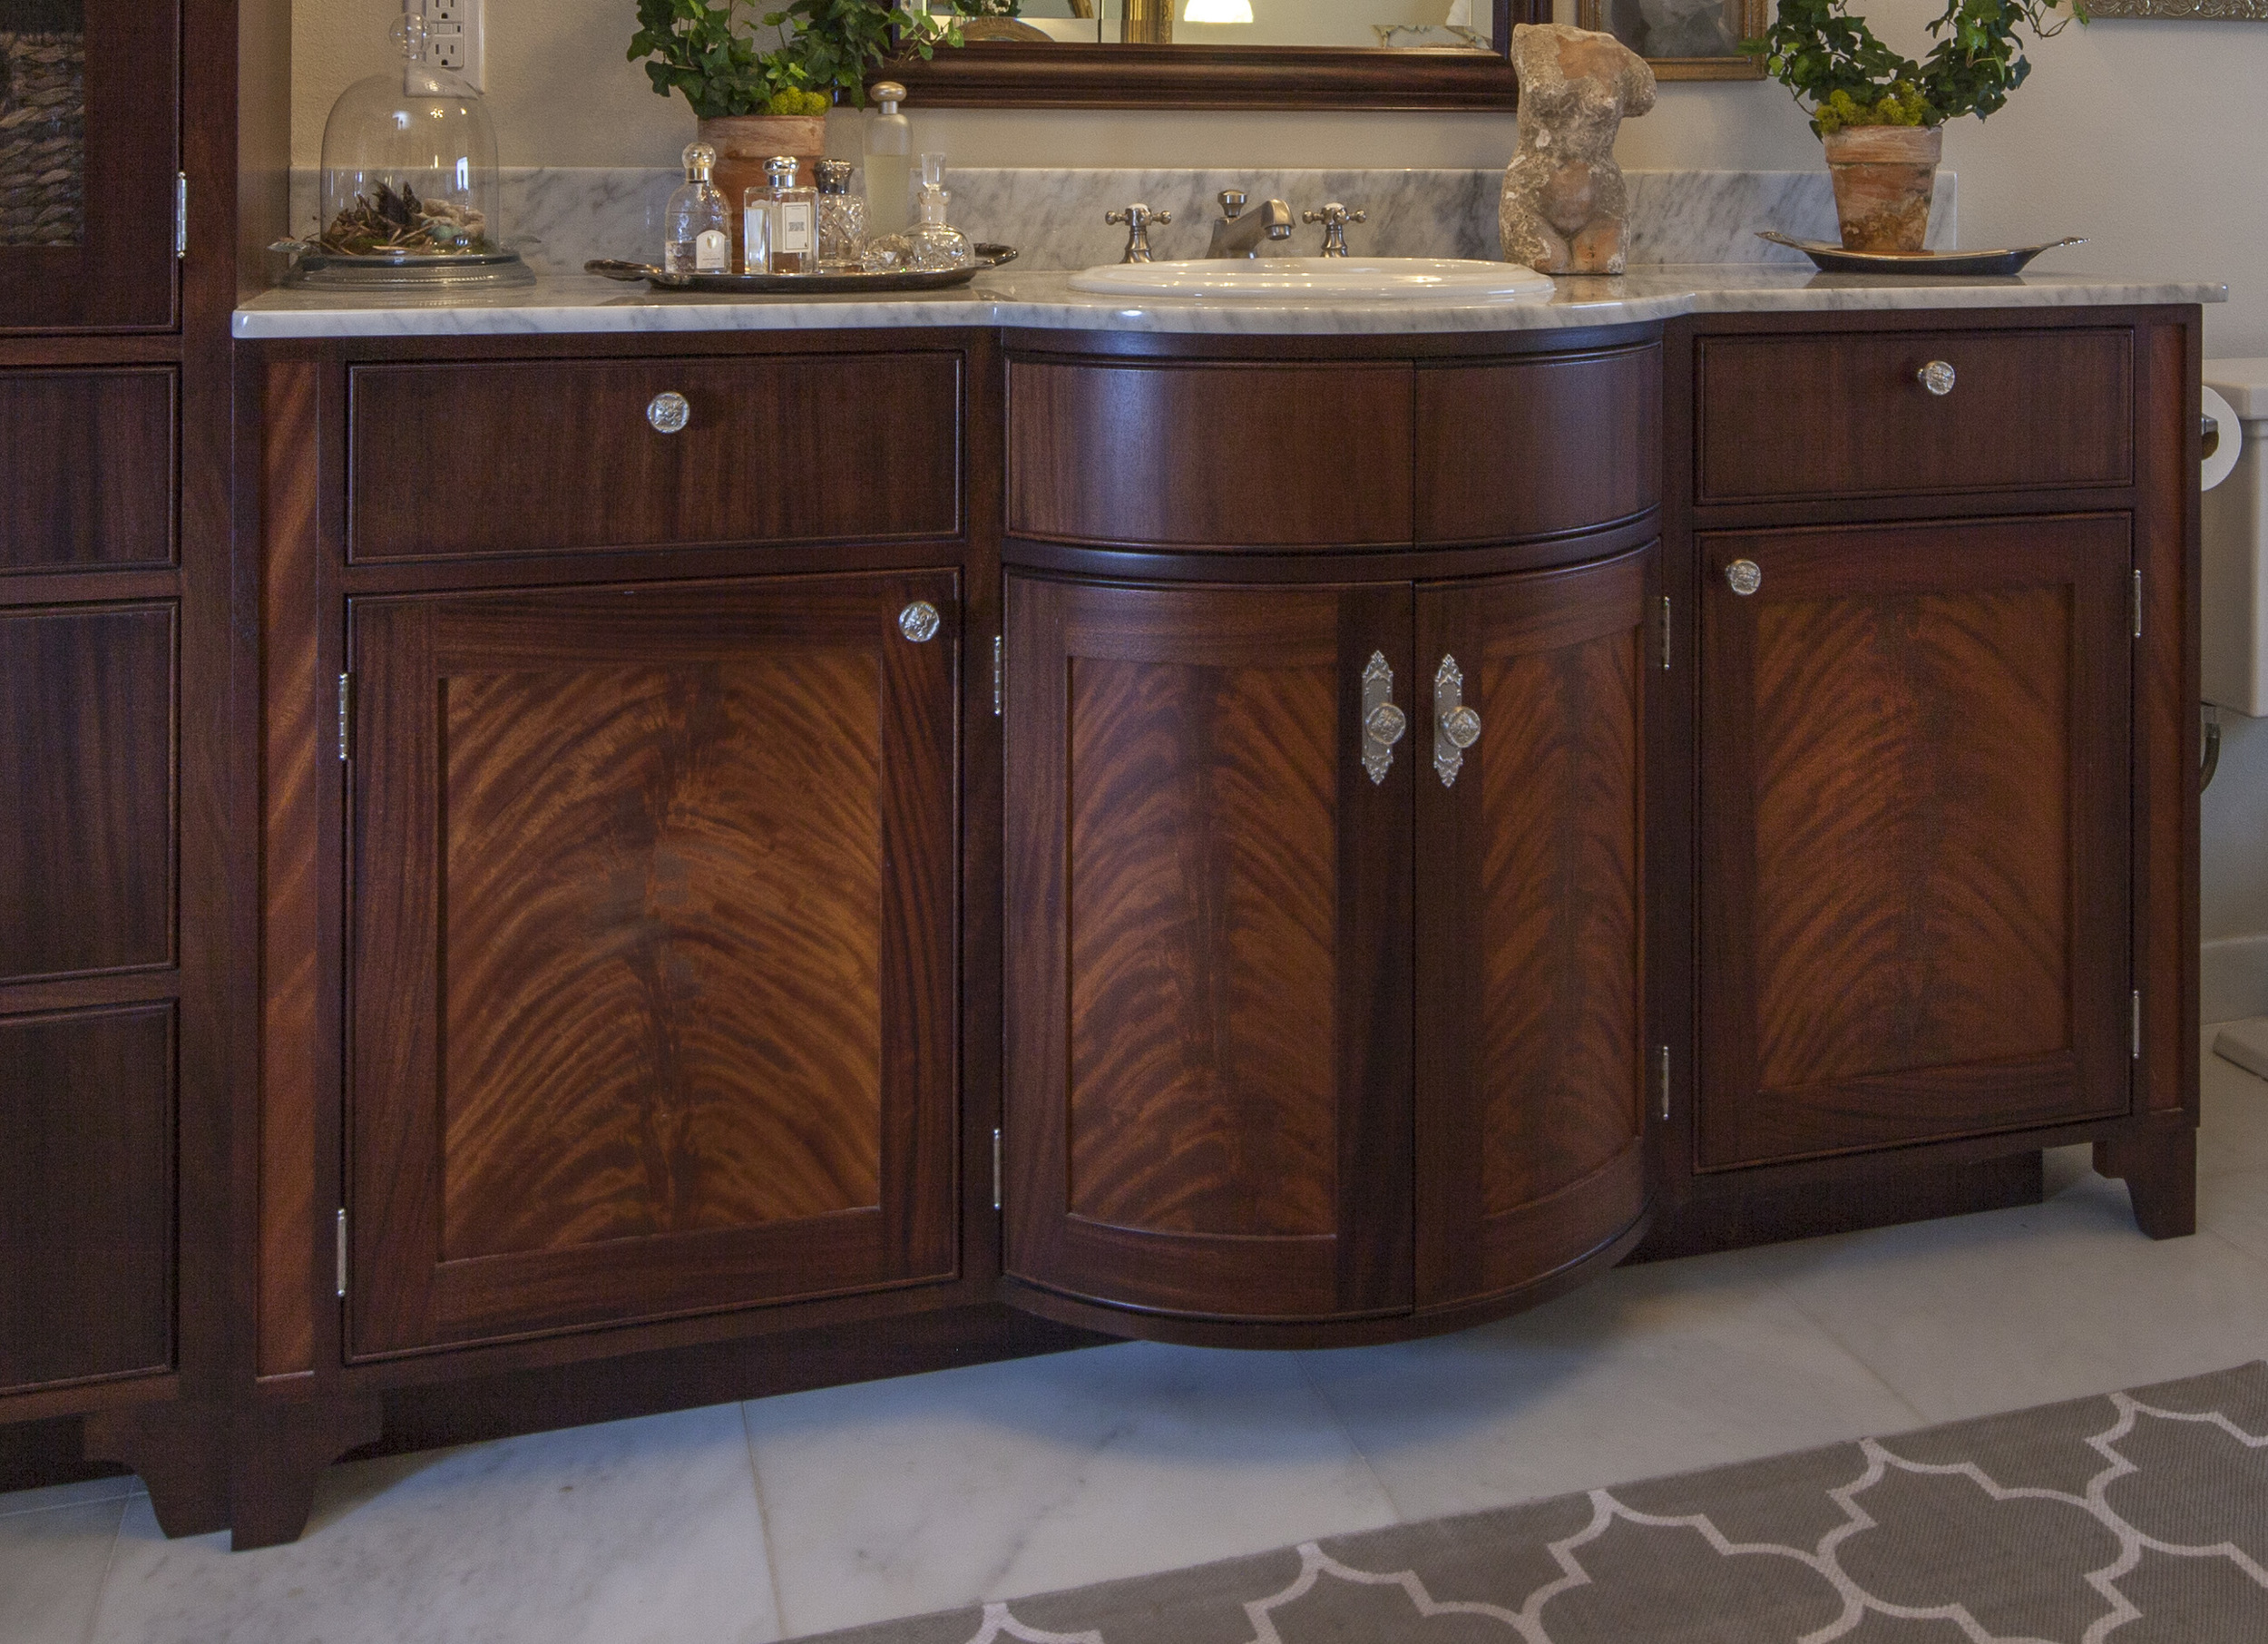 Bathroom vanity by Reznikoff Custom Furniture. Built from crotch mahogany, the curved door treatment makes a notable statement in fine furniture.